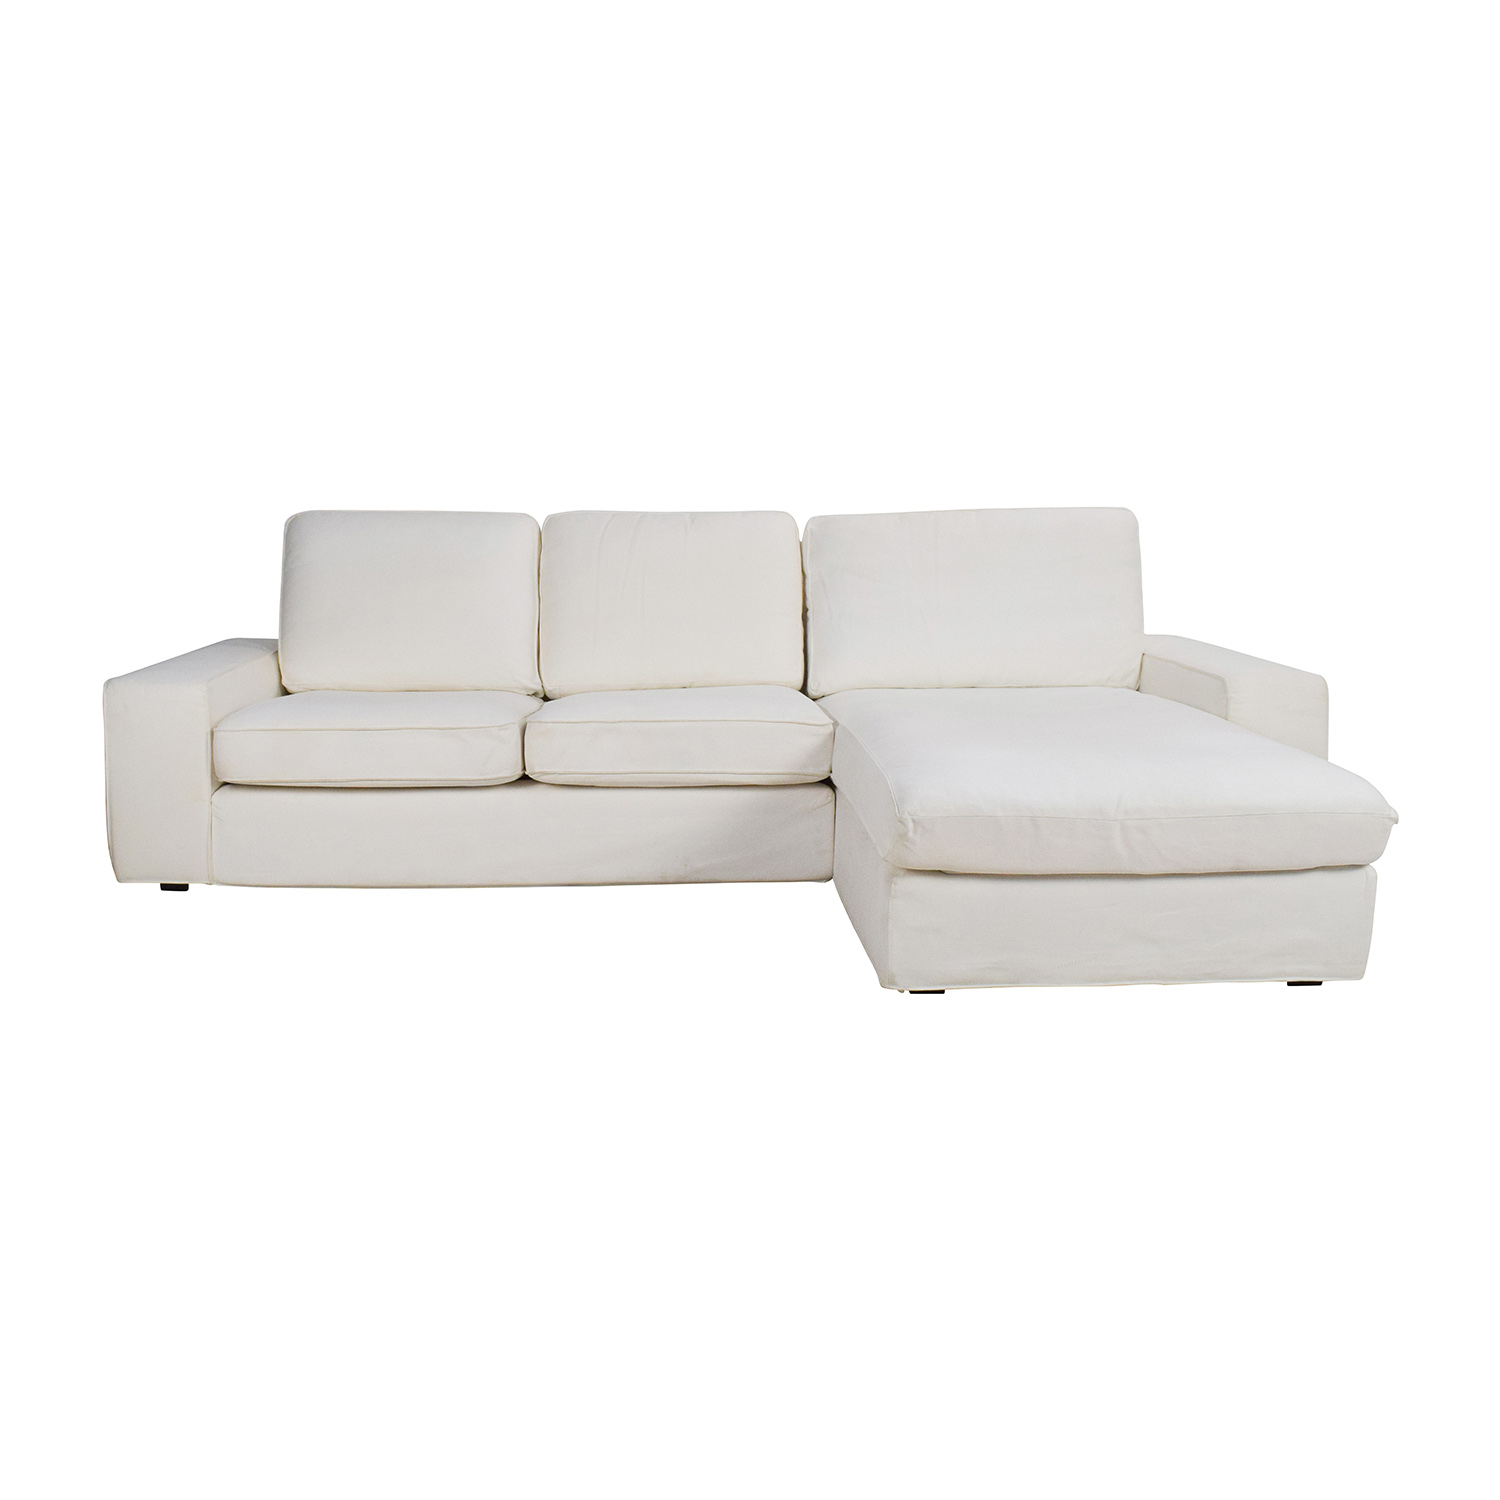 image storage bed chaise popular sofa build darntough ikea design futon with underneath of a